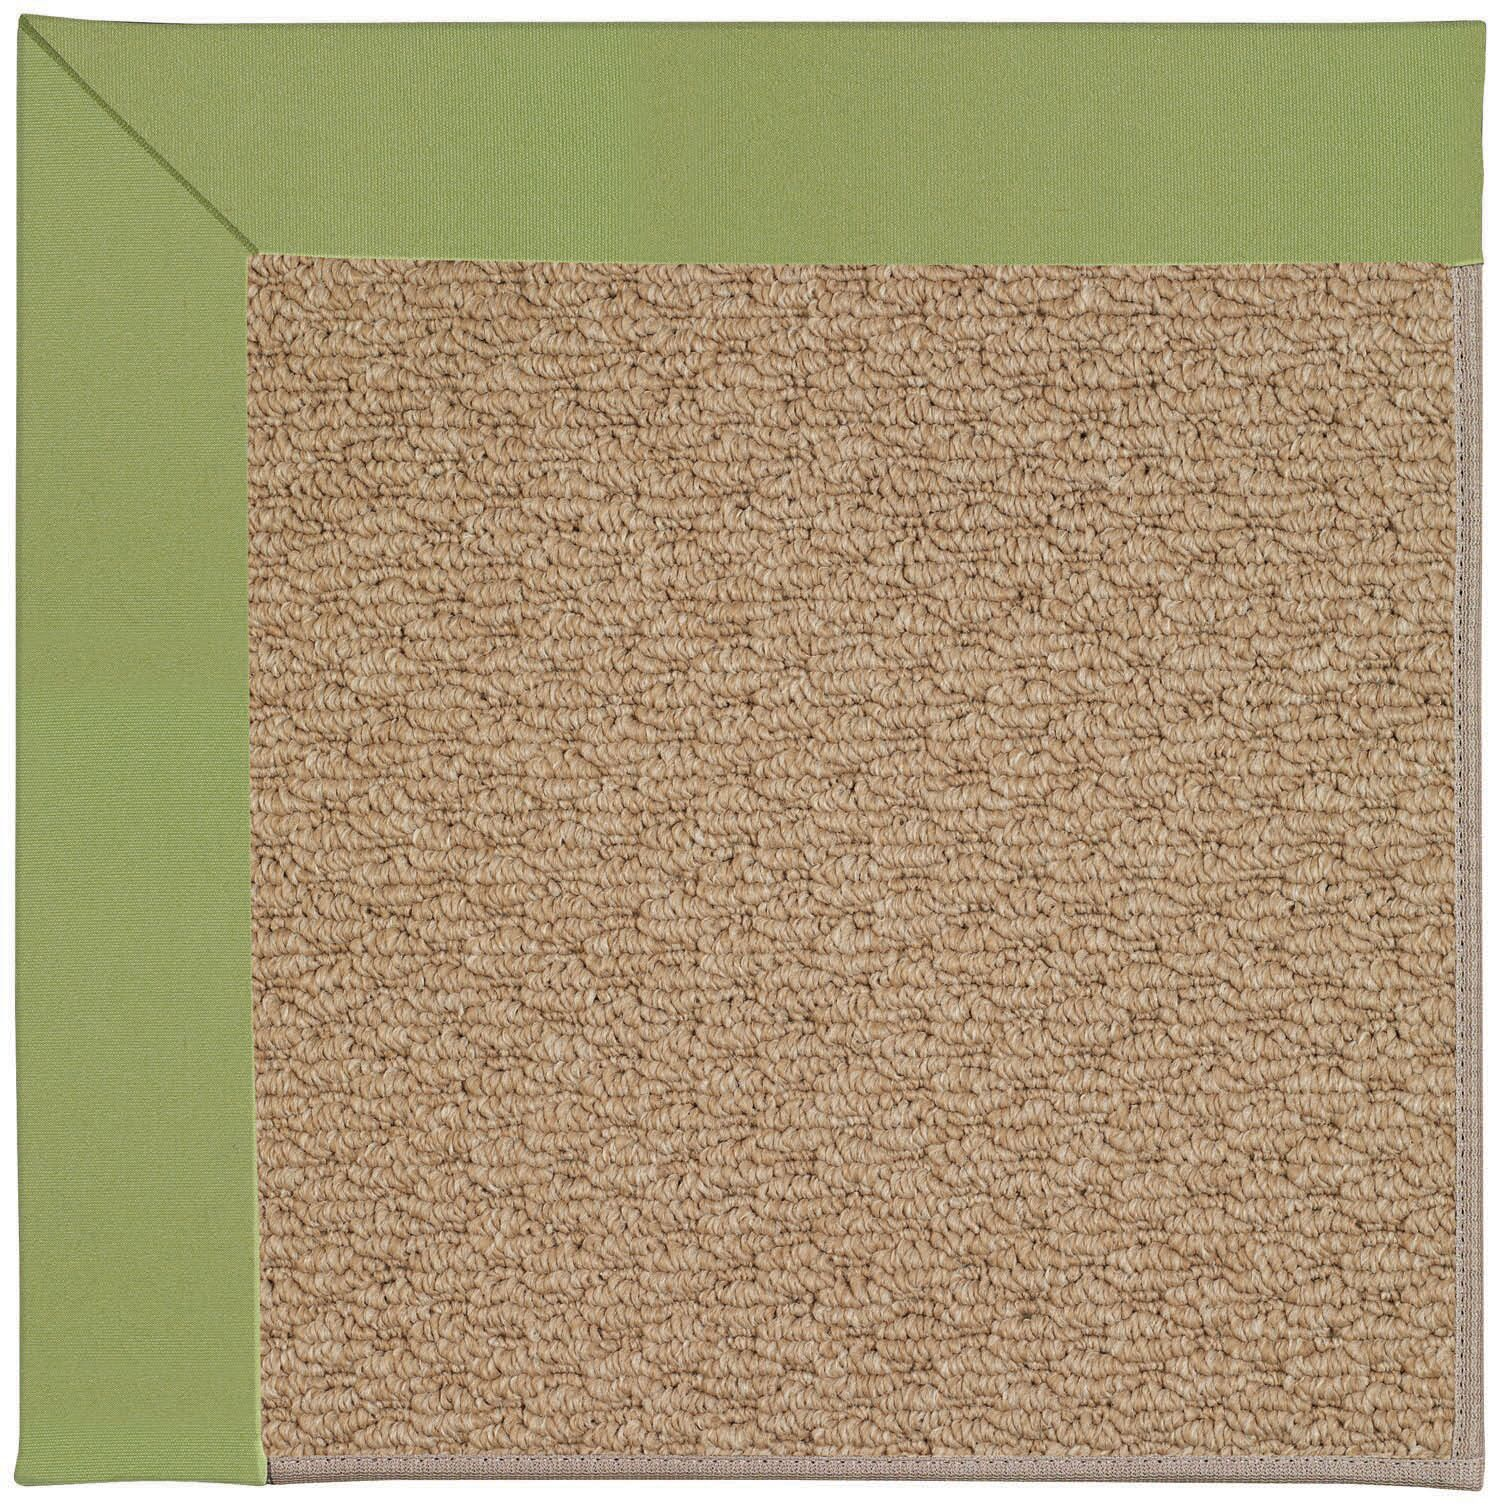 Lisle Machine Tufted Green/Brown Indoor/Outdoor Area Rug Rug Size: Rectangle 5' x 8'